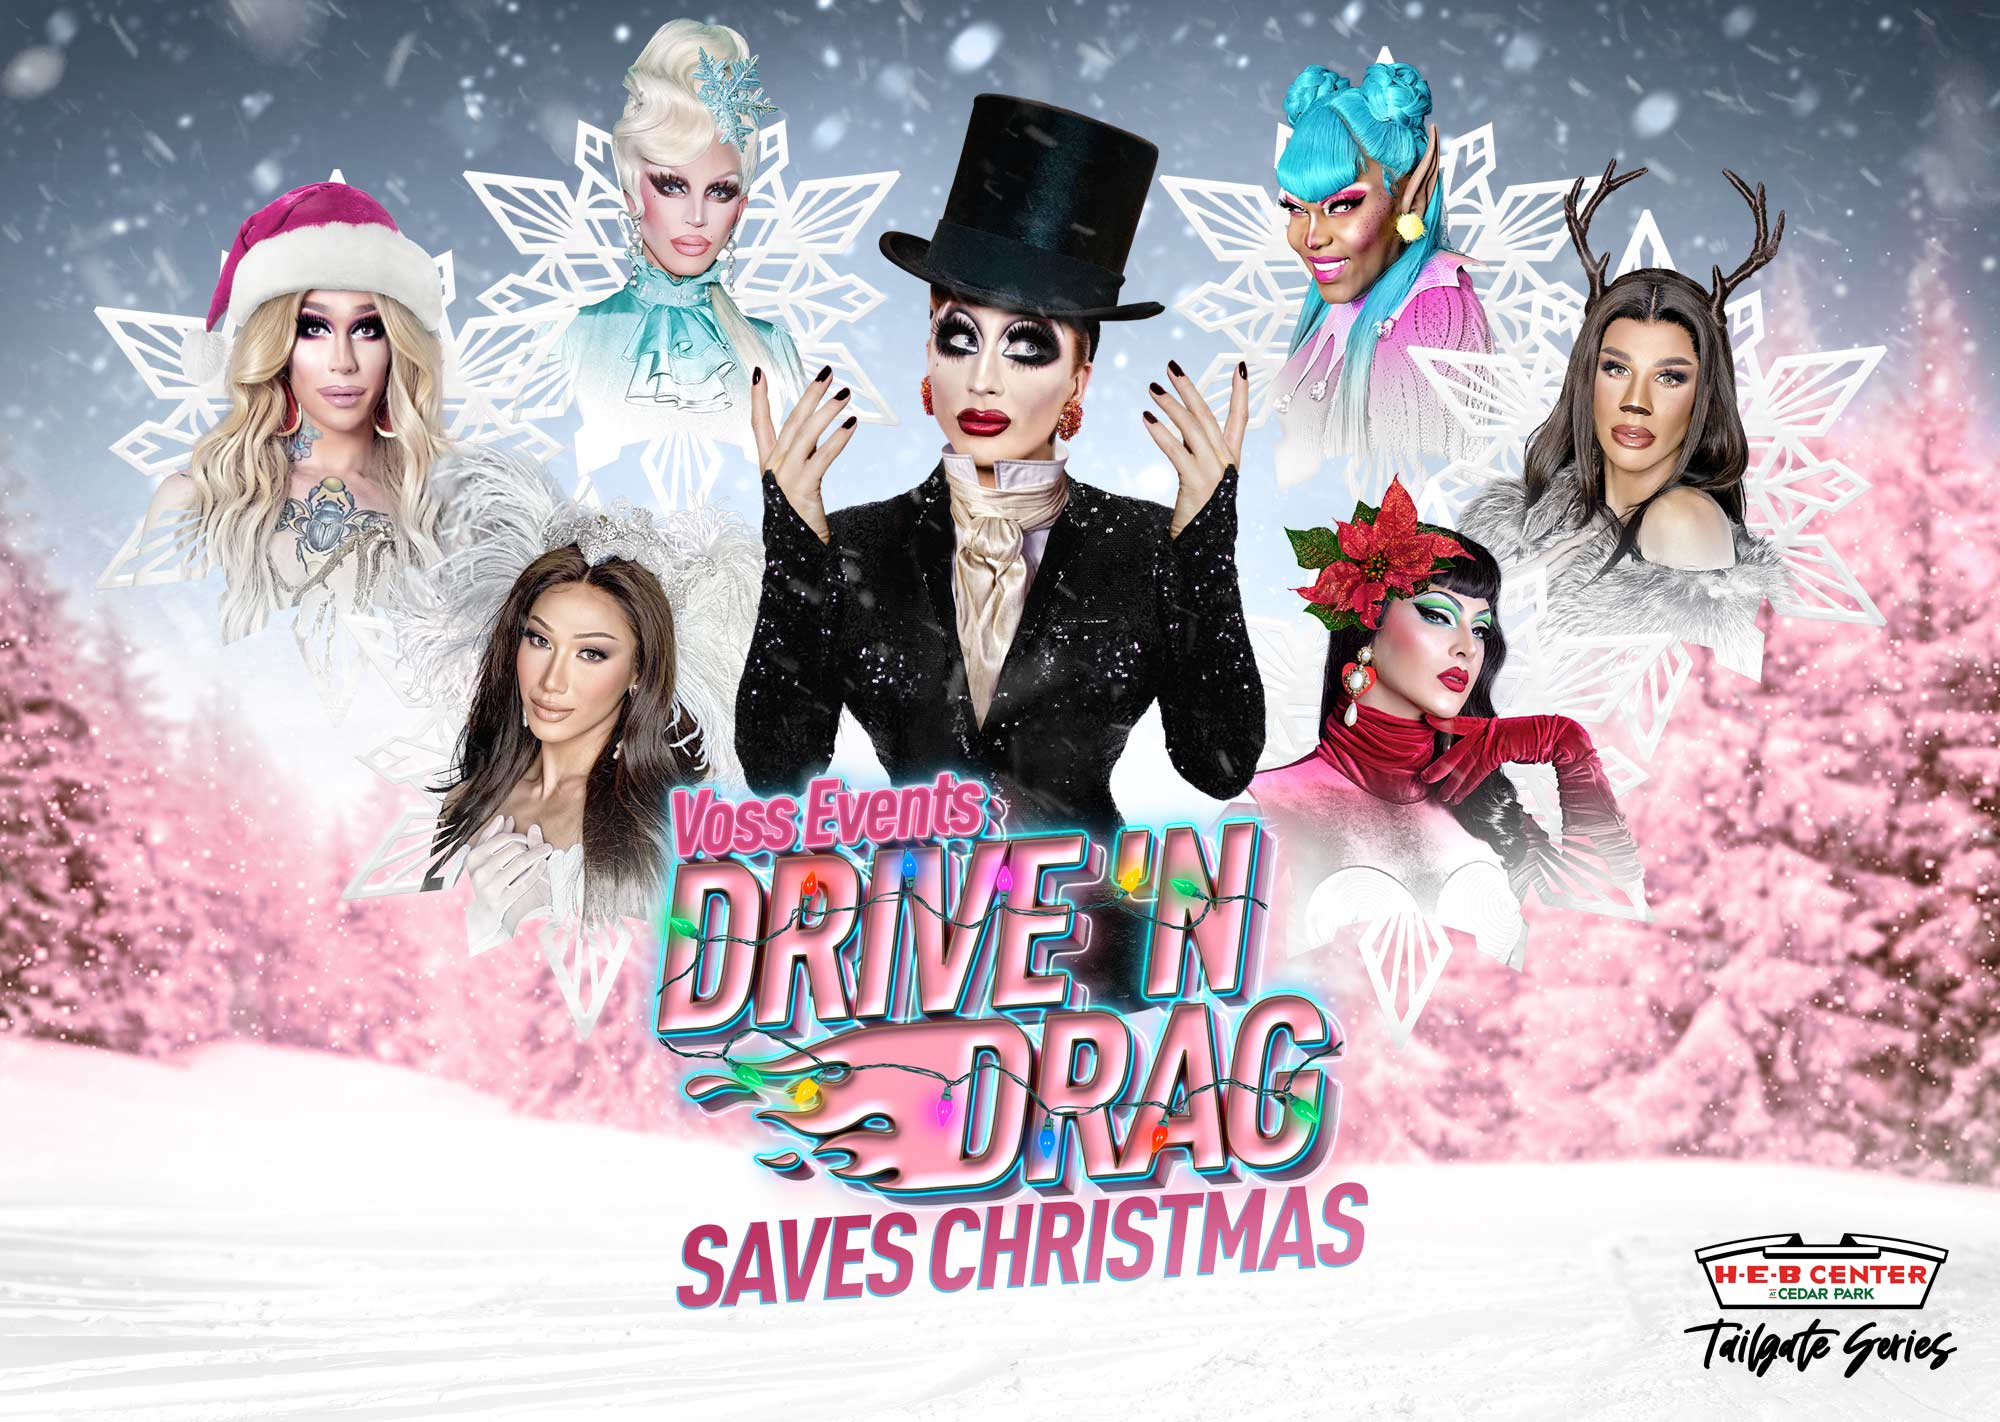 Salty Christmas In The Park 2020 Tailgate Series: Drive 'N Drag Saves Christmas | H E B Center